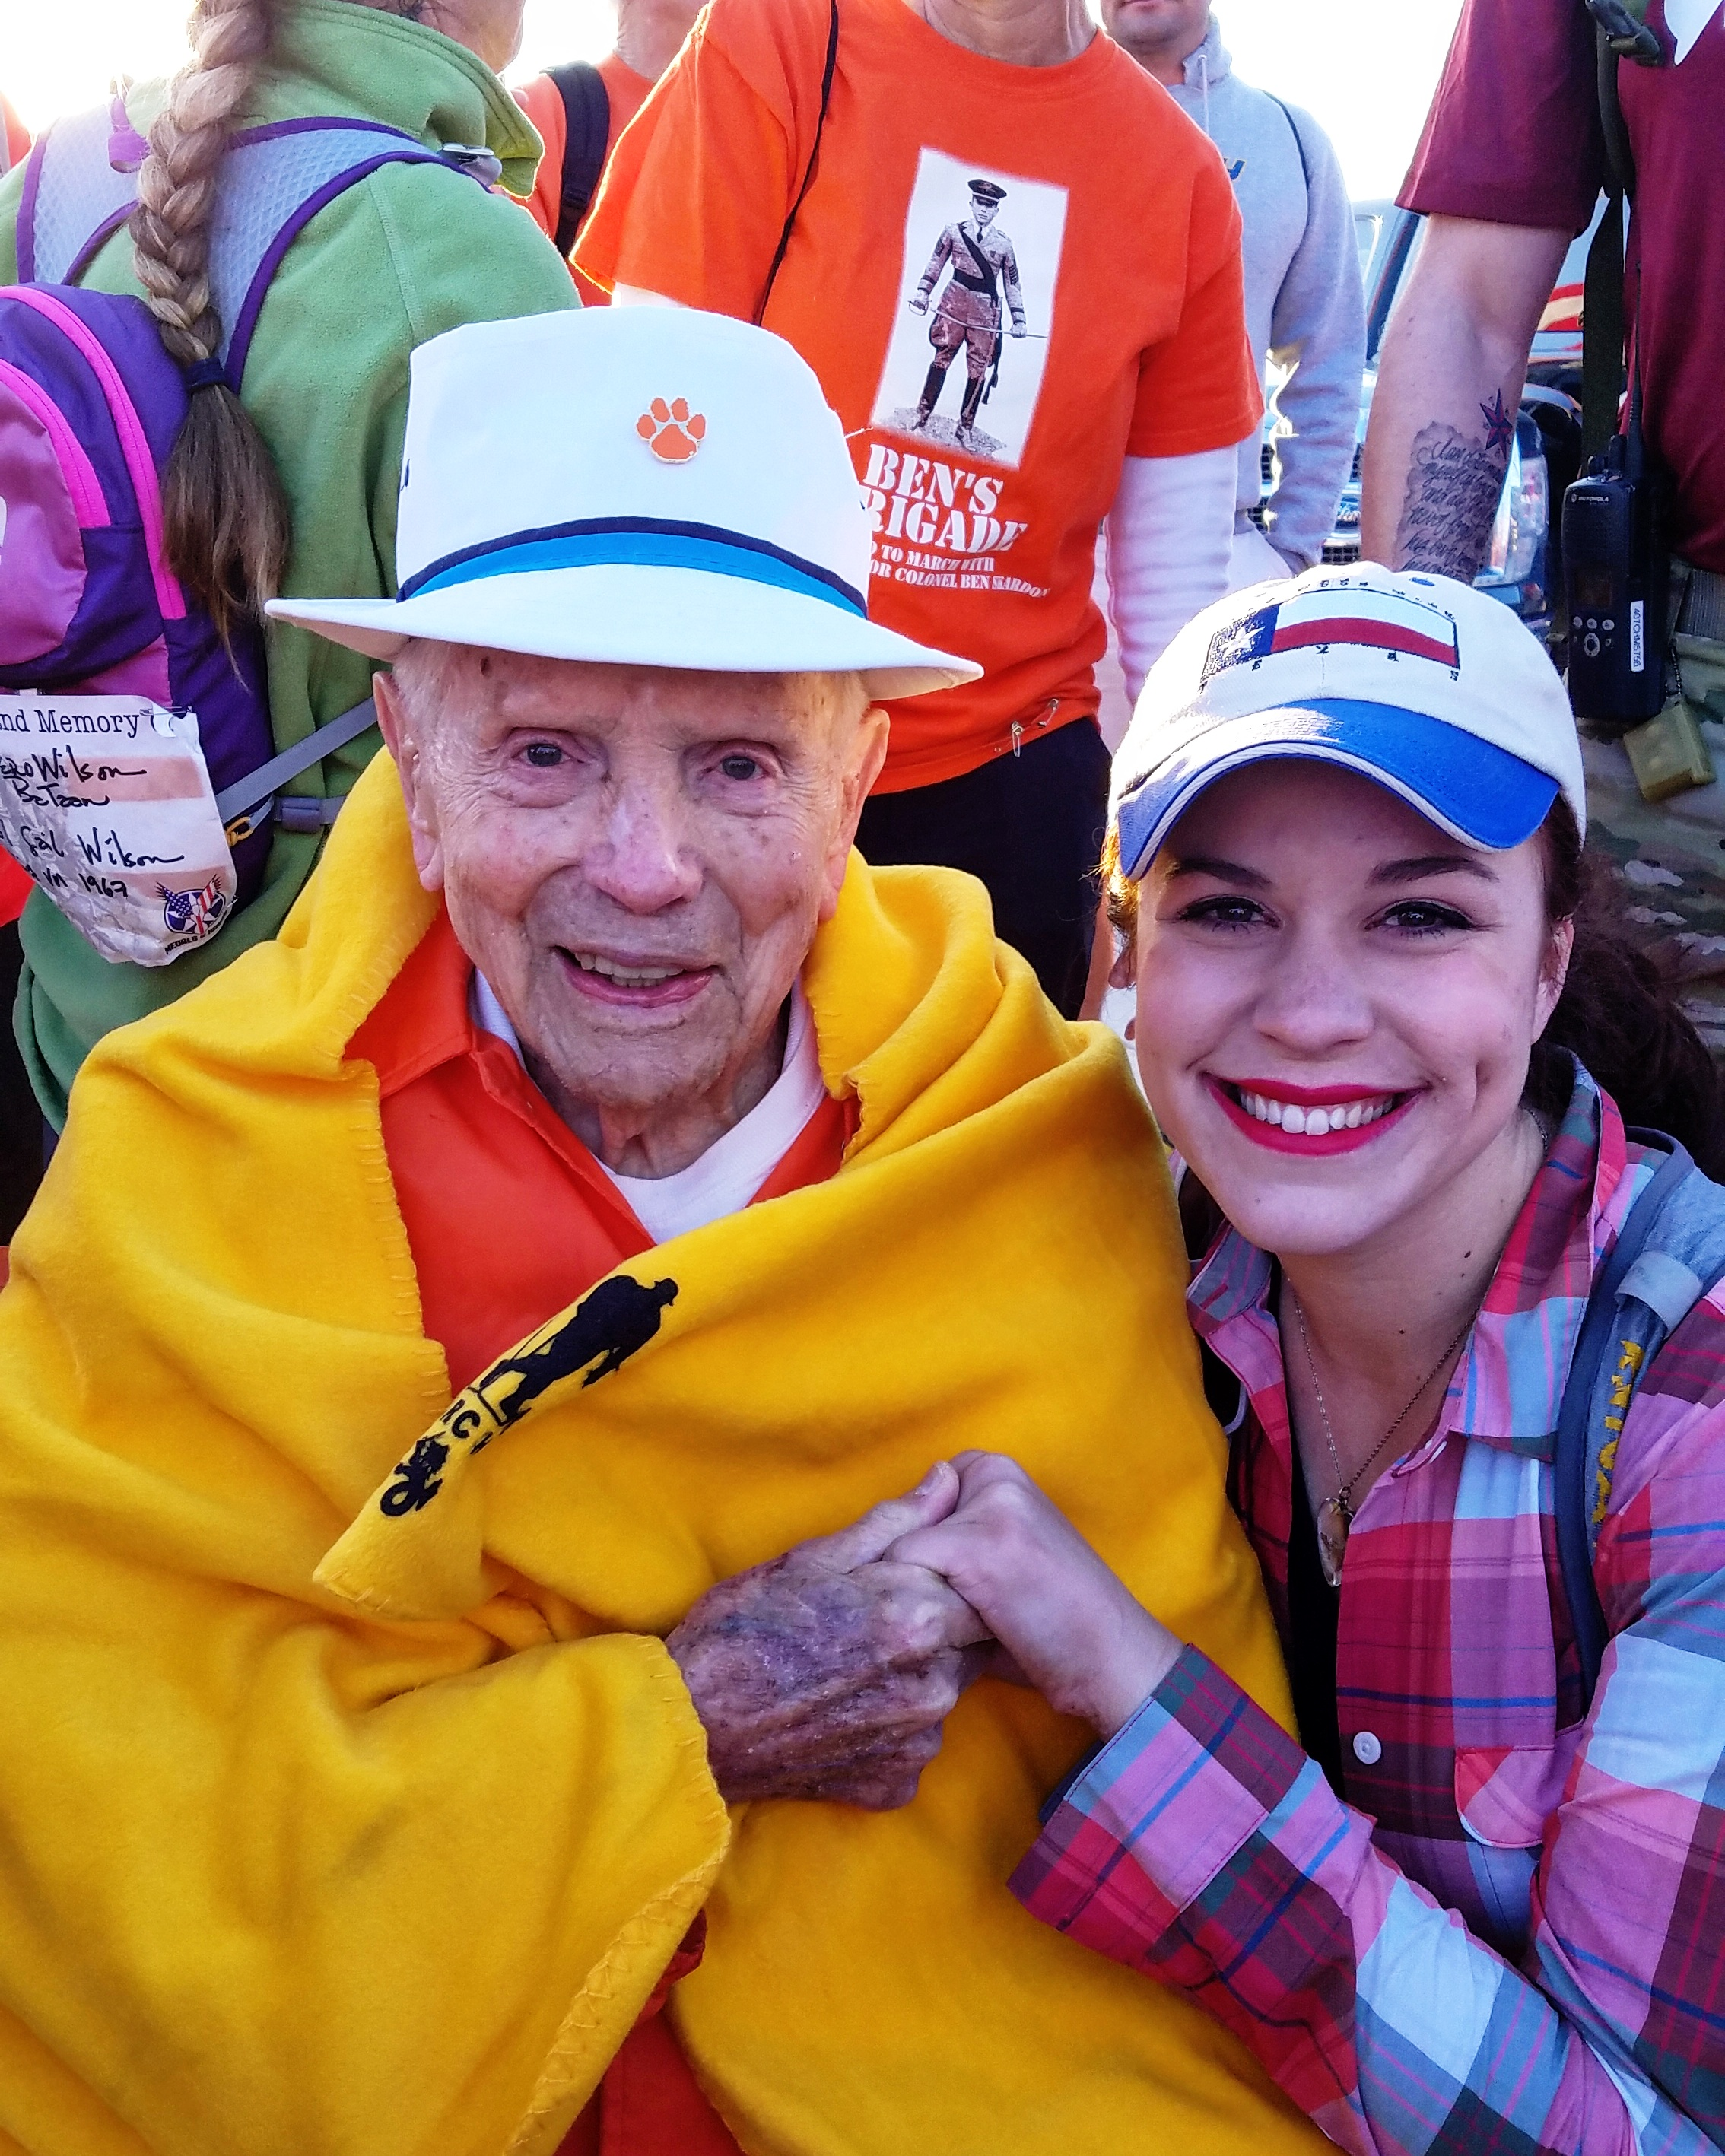 Probably my favorite photo from this week. I can't describe the honor it was to march with Colonel Ben Skardon on my great-great uncle's behalf during the Bataan Memorial Death March. Truly a once in a lifetime experience.